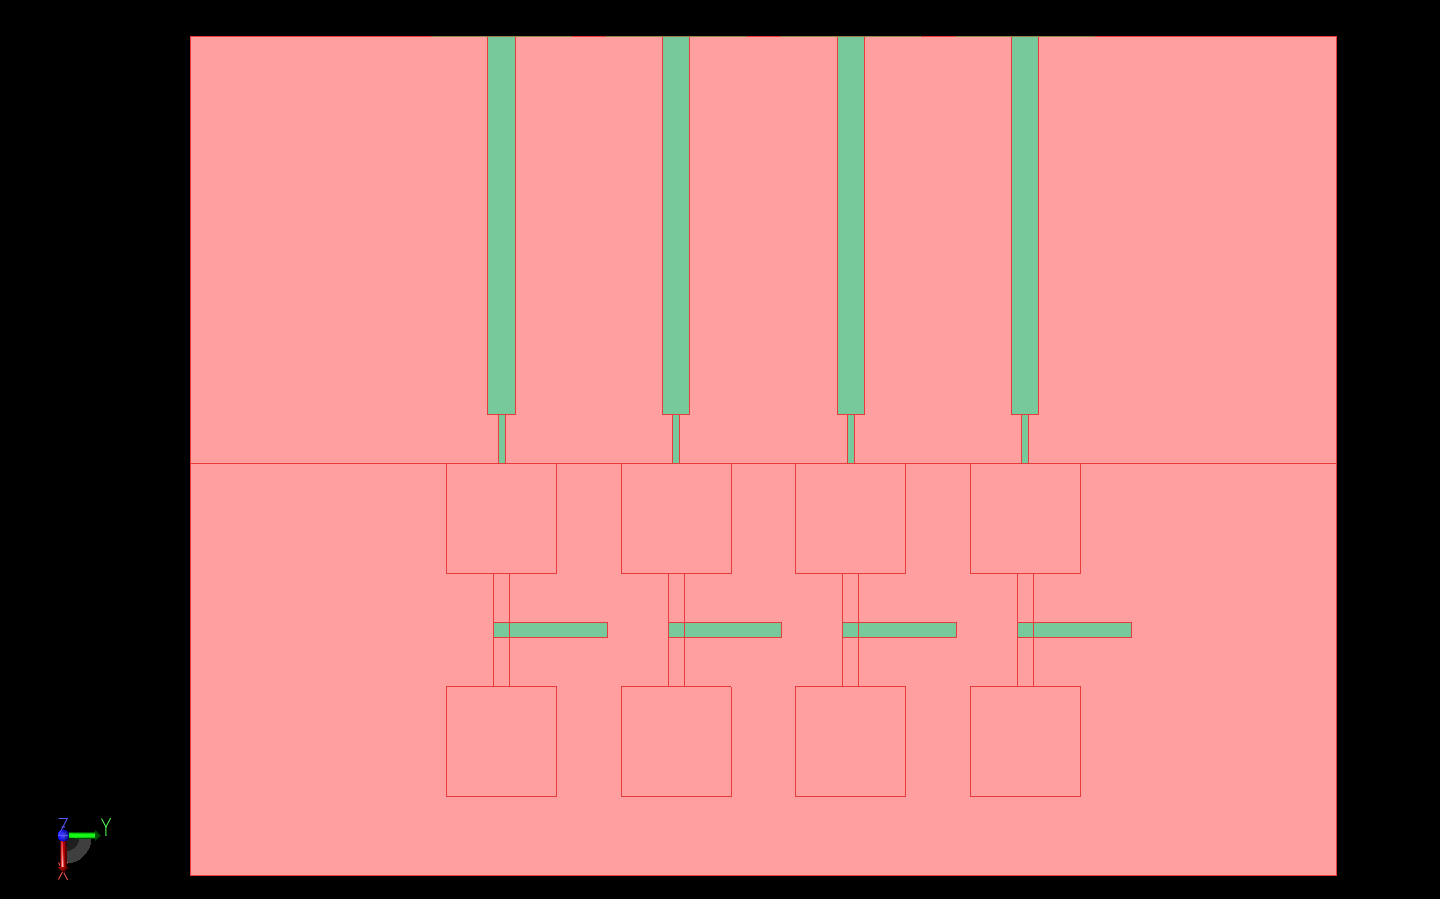 Figure 1: Shown is a top view of the antenna array with the substrate layers shown in red and the metal feed lines and parasitic elements in green. The patches are shown as outlines because they are covered by a second substrate layer.